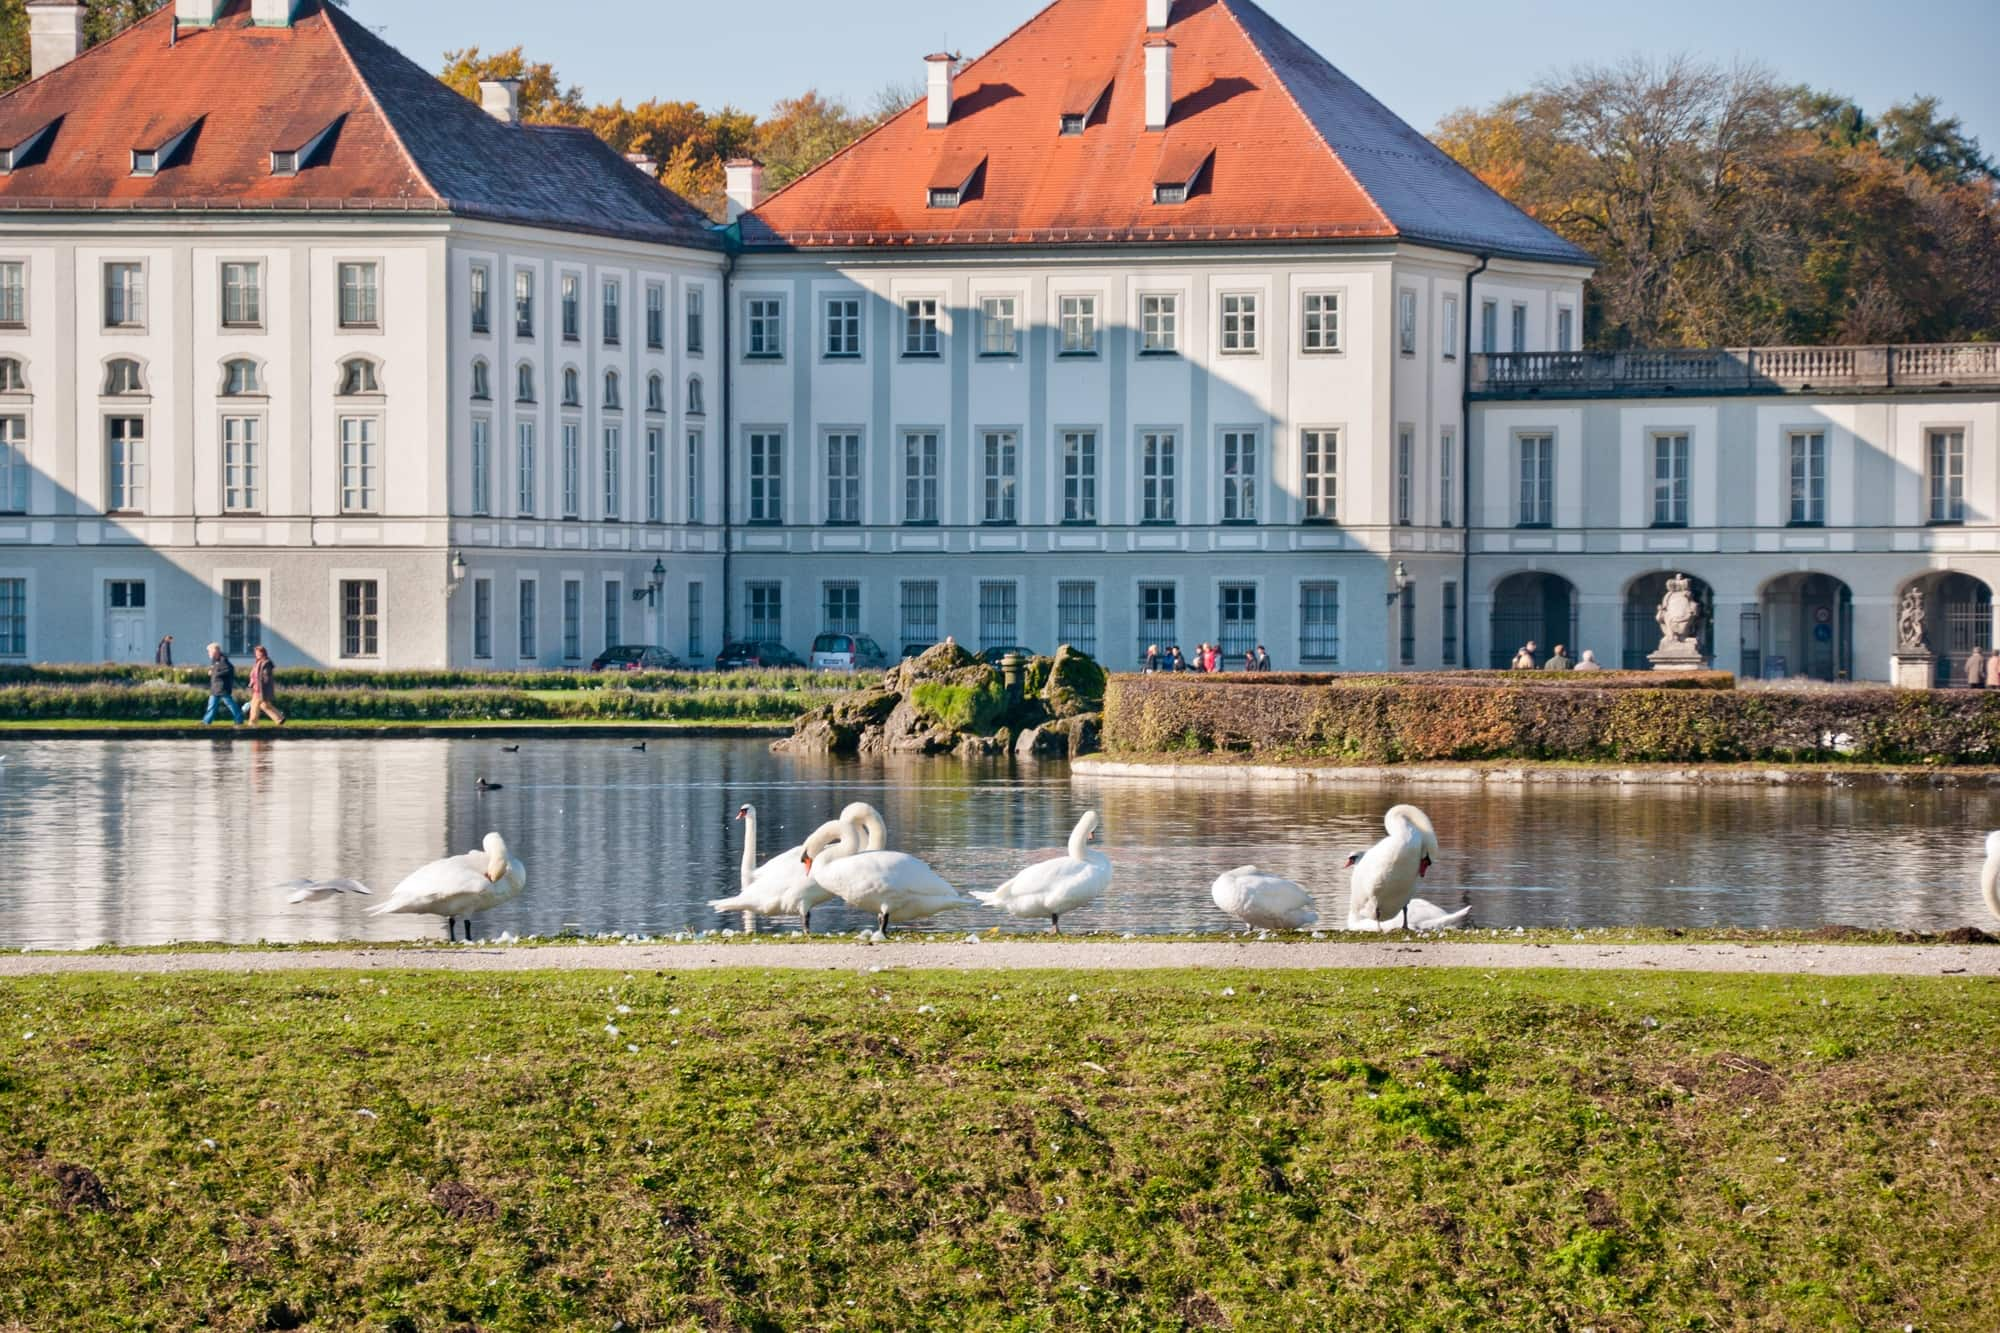 Swans at the pond near famous Nymphenburg Palace in Munich with kids